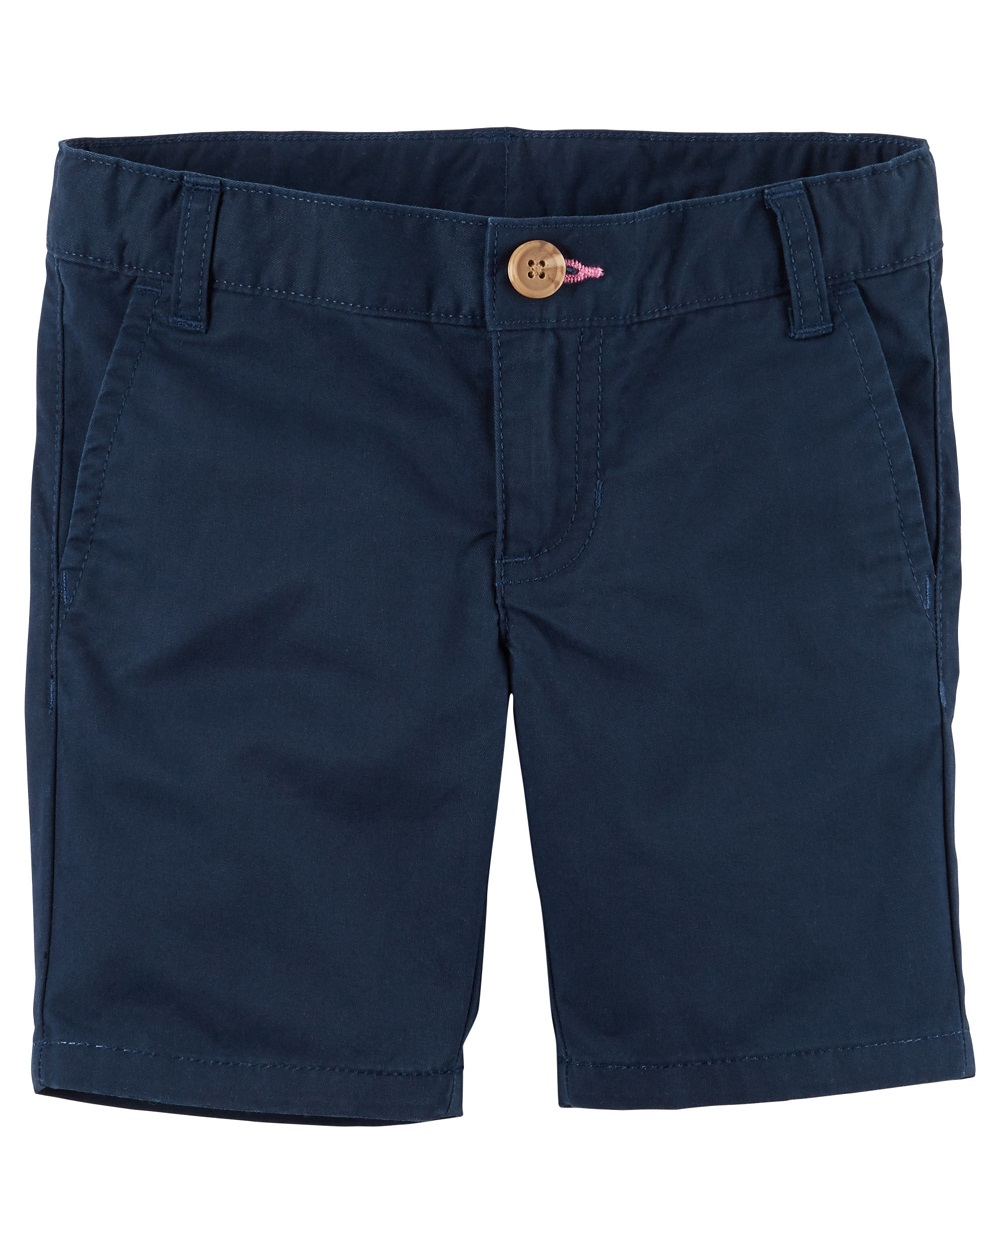 Olive Carters Girls Embroidered Twill Shorts